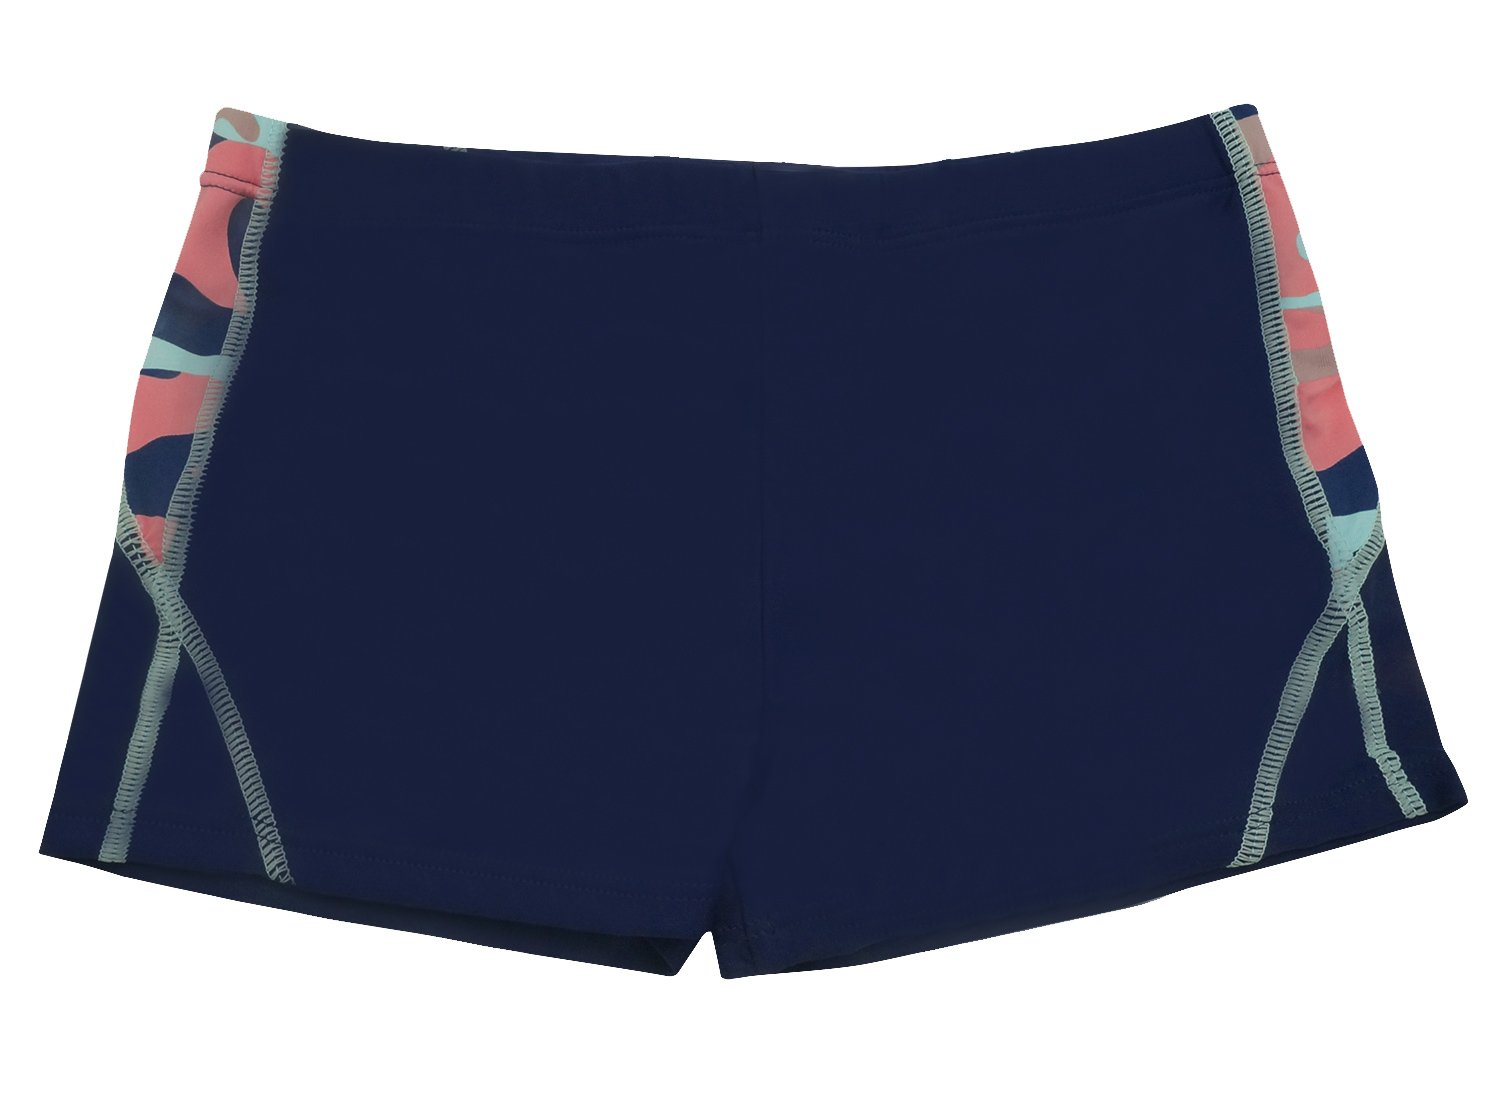 Aivtalk Boys Swimming Trunks Drawstring Mesh Lined Quick Dry Boxer Briefs 4-8T